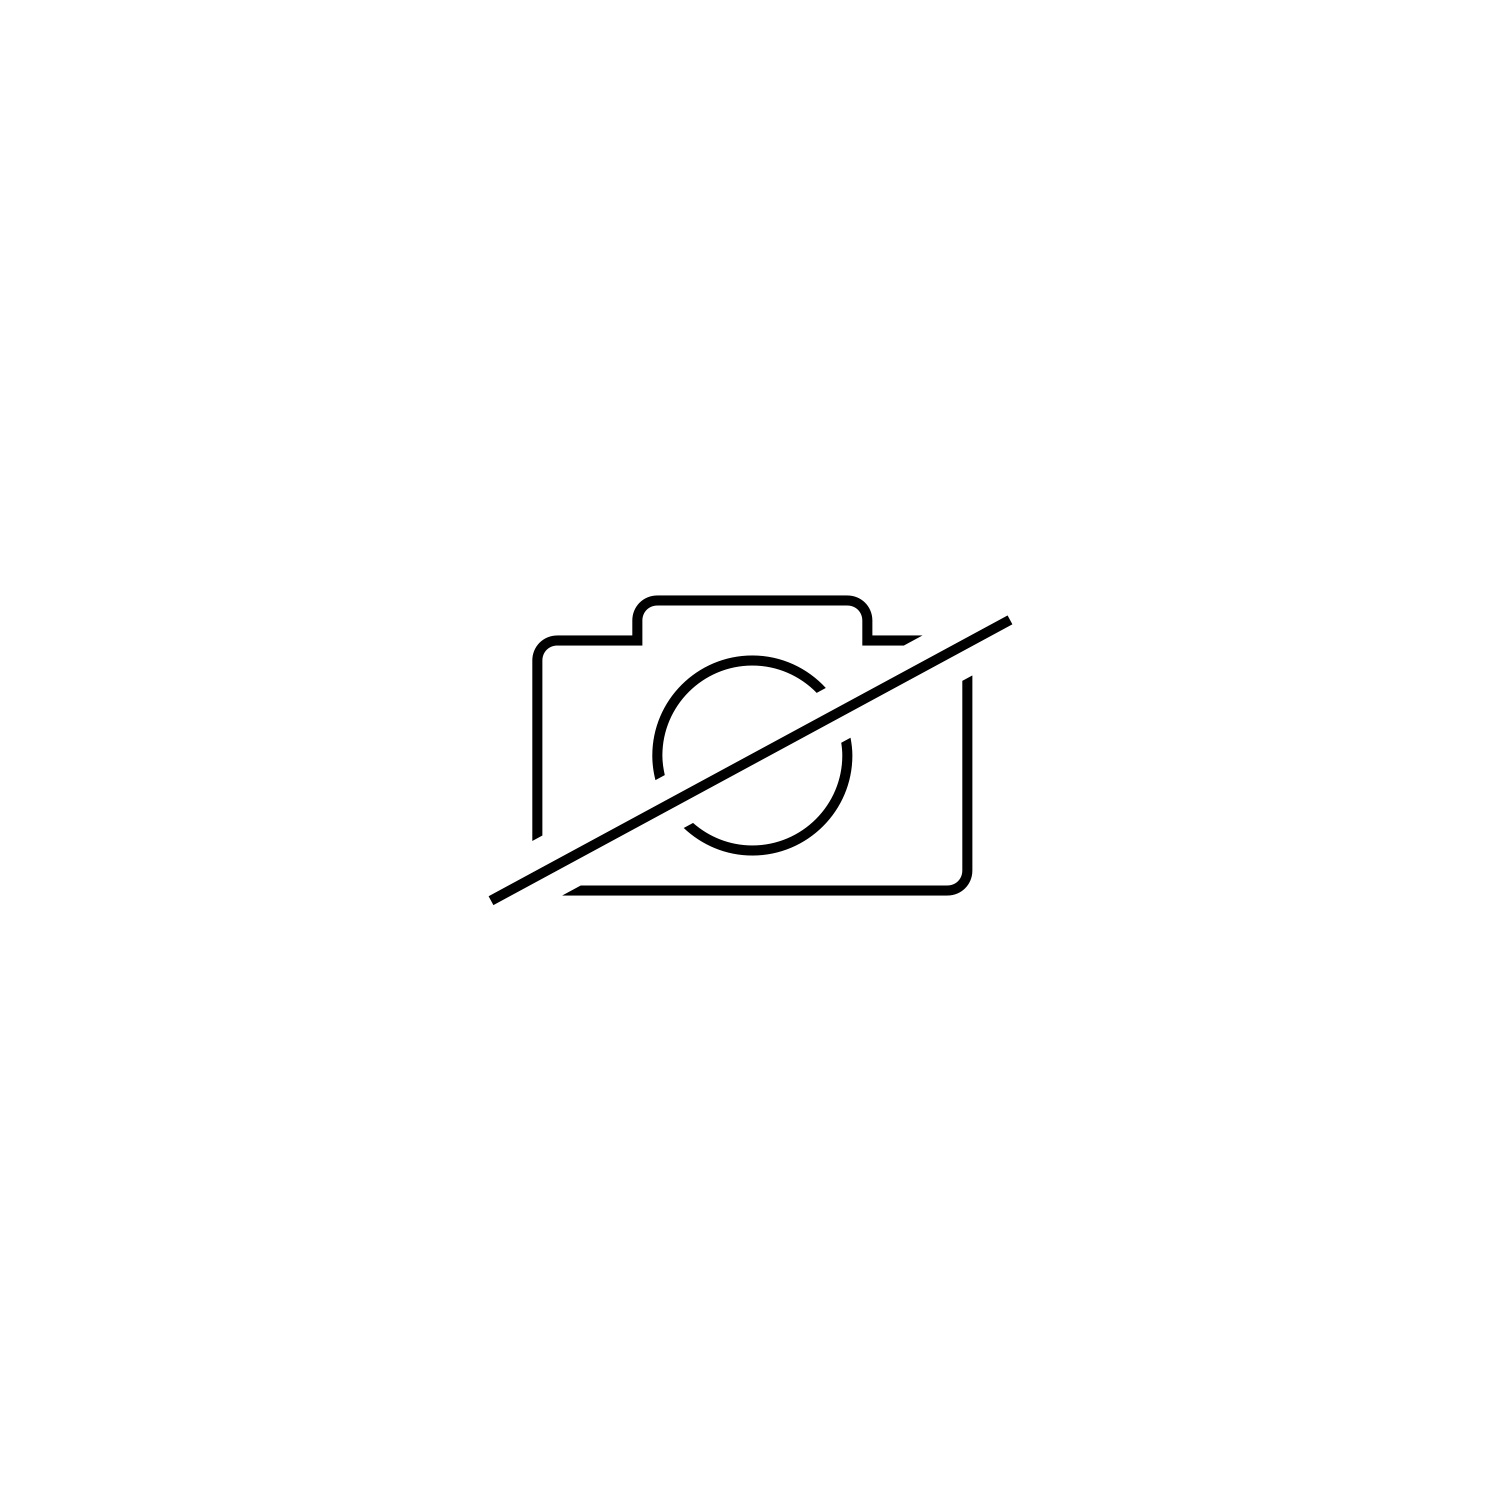 quattro Hoodie, Womens, Light grey, XL